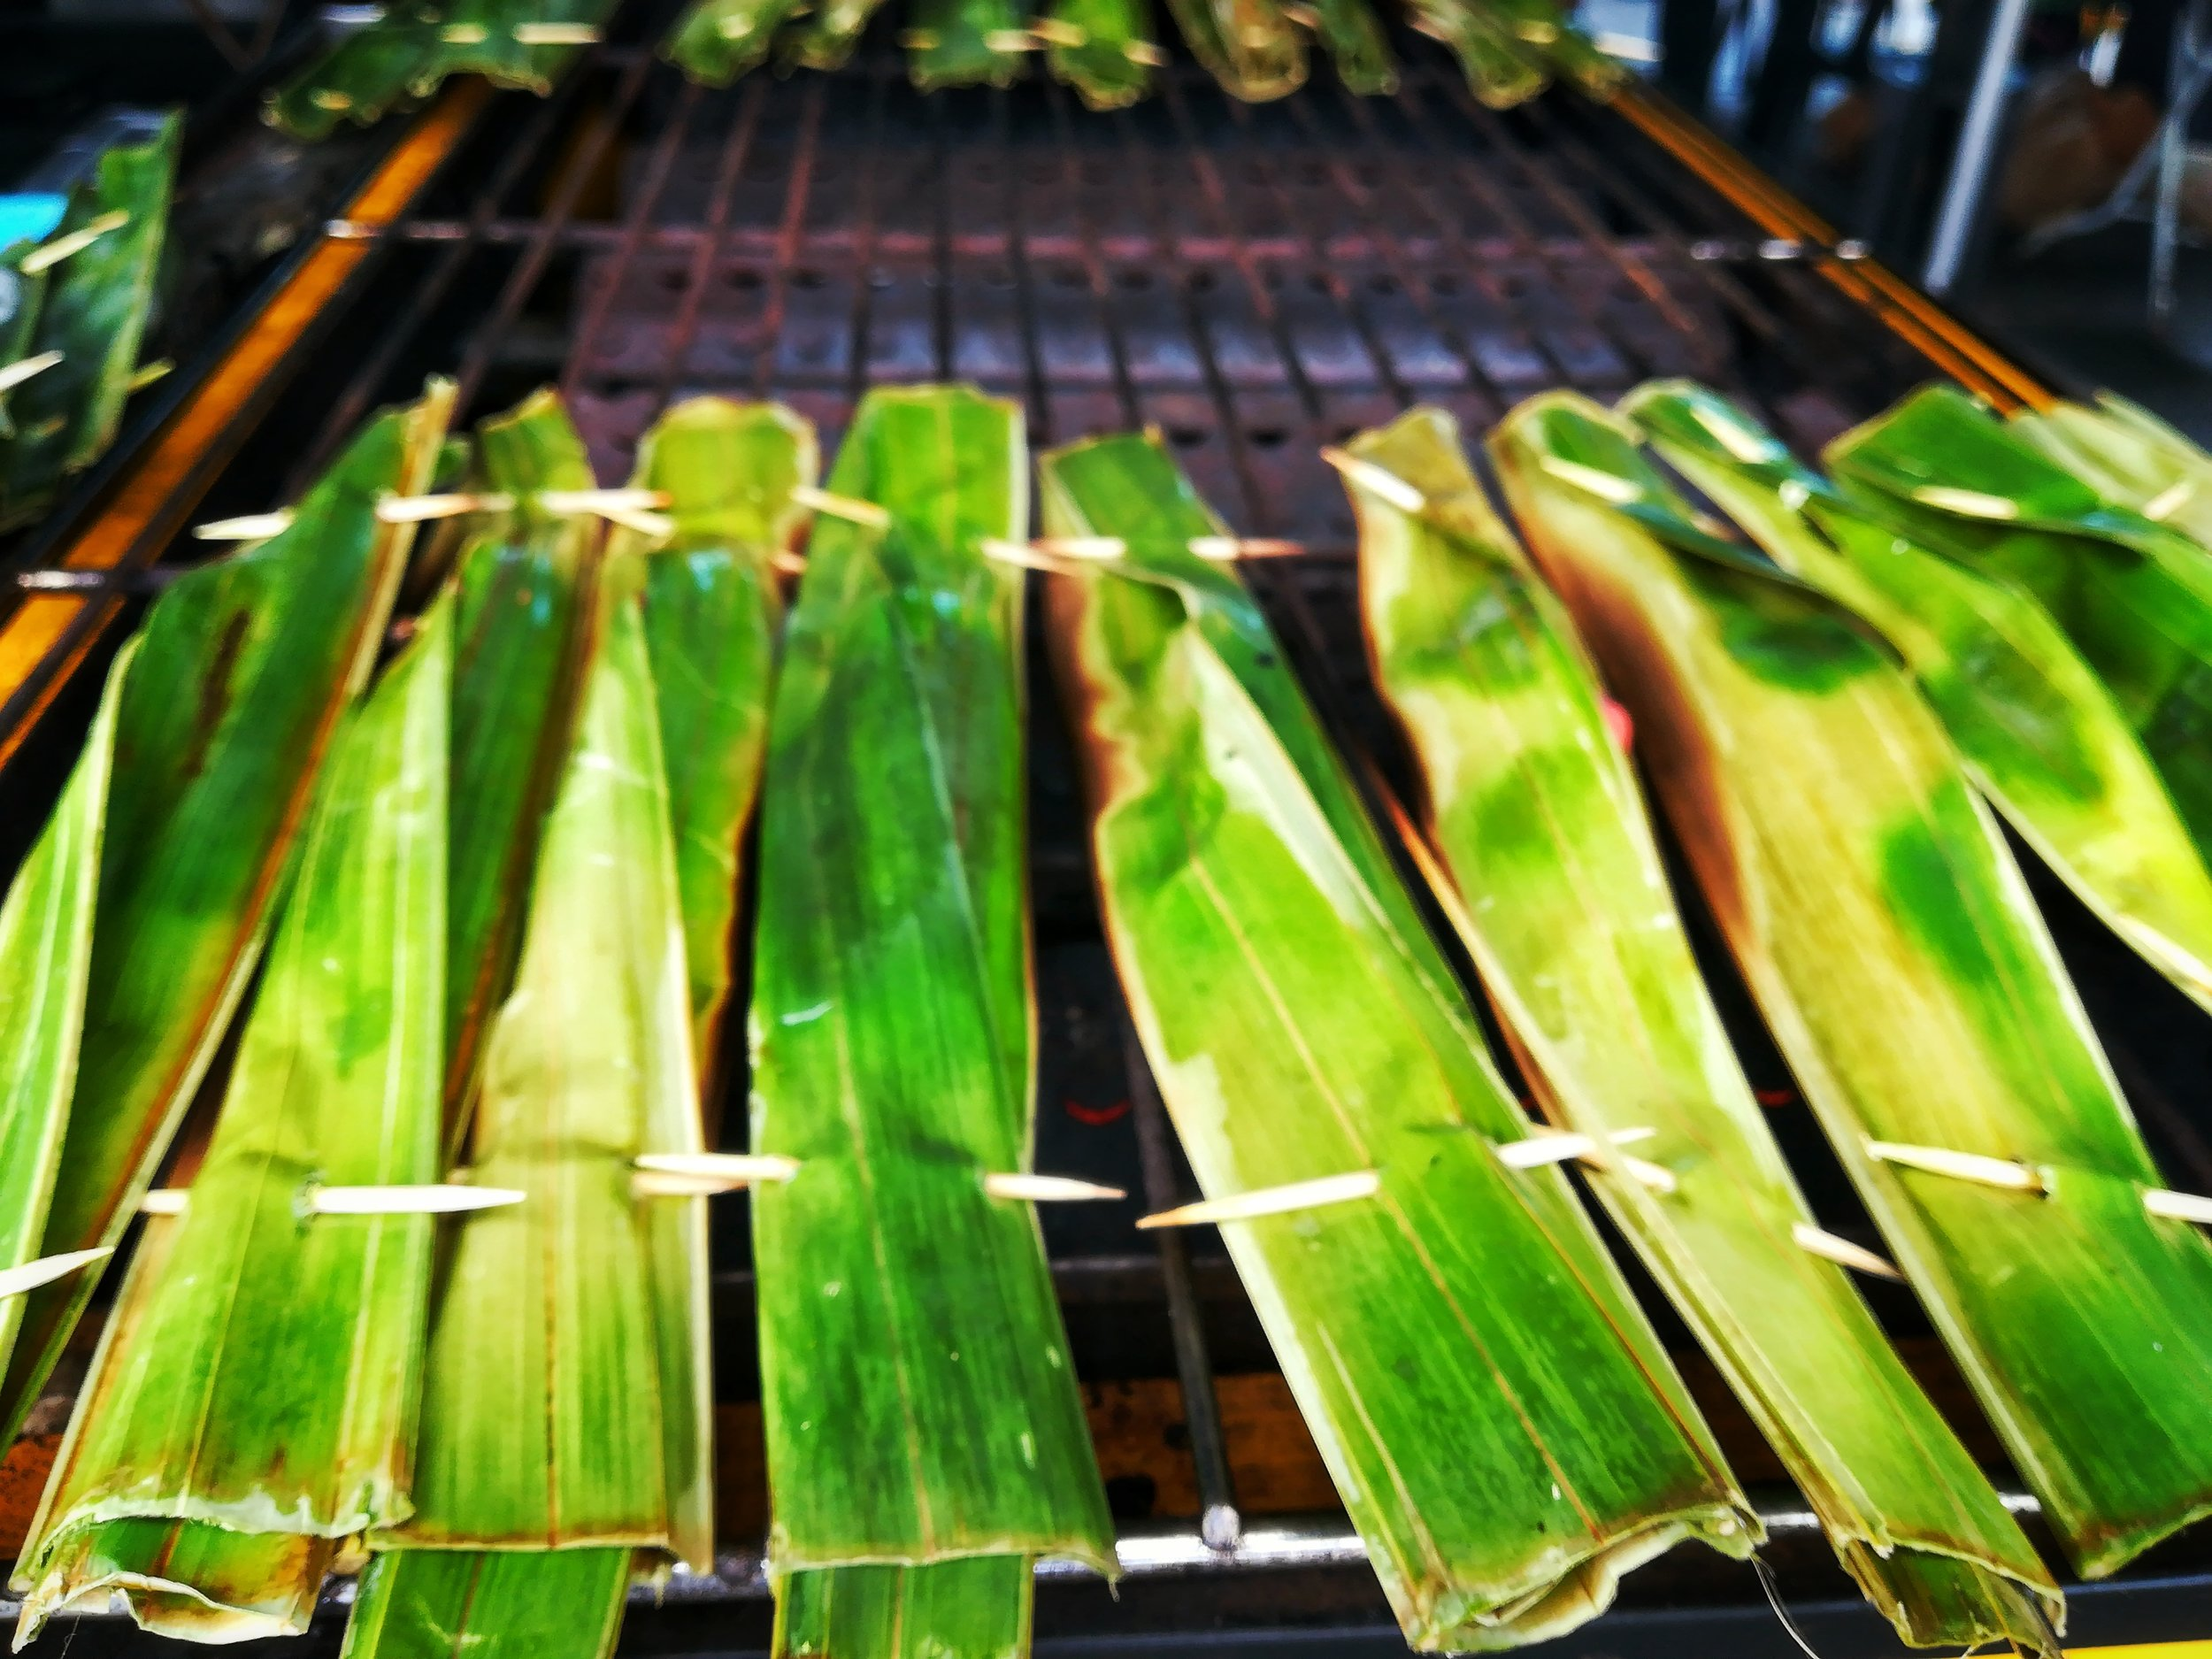 Otak otak is made with ground fish, spices, coconut milk and aromatics. It's either steamed or grilled, depending on where you're having it. The otak otak is a shared heritage recipe in the Nusantara region comprising Indonesia, Malaysia, Singapore and South Thailand.